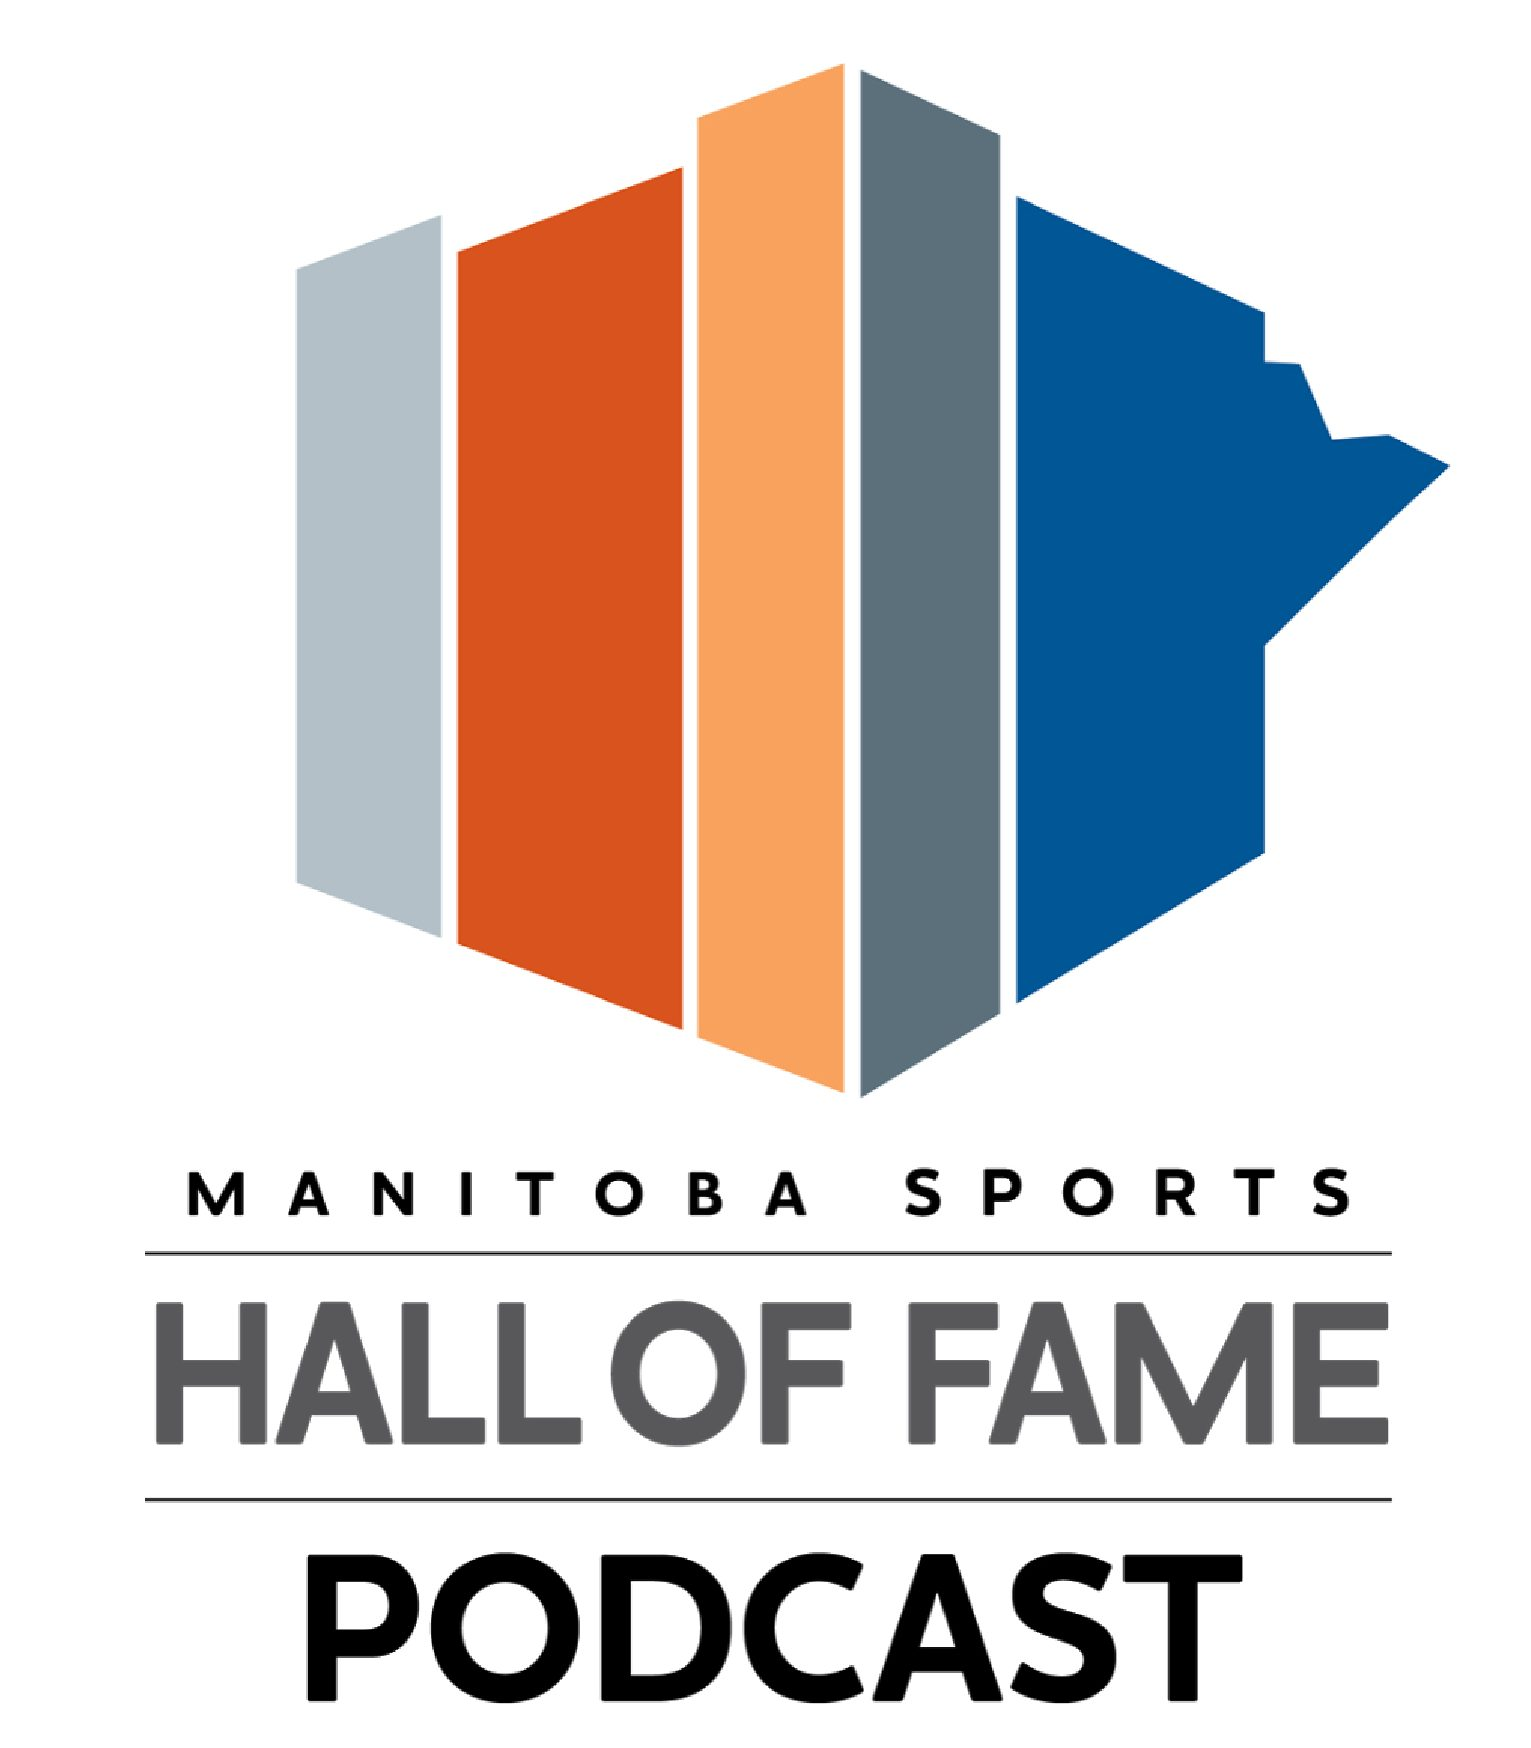 Manitoba Sports Hall of Fame Podcast